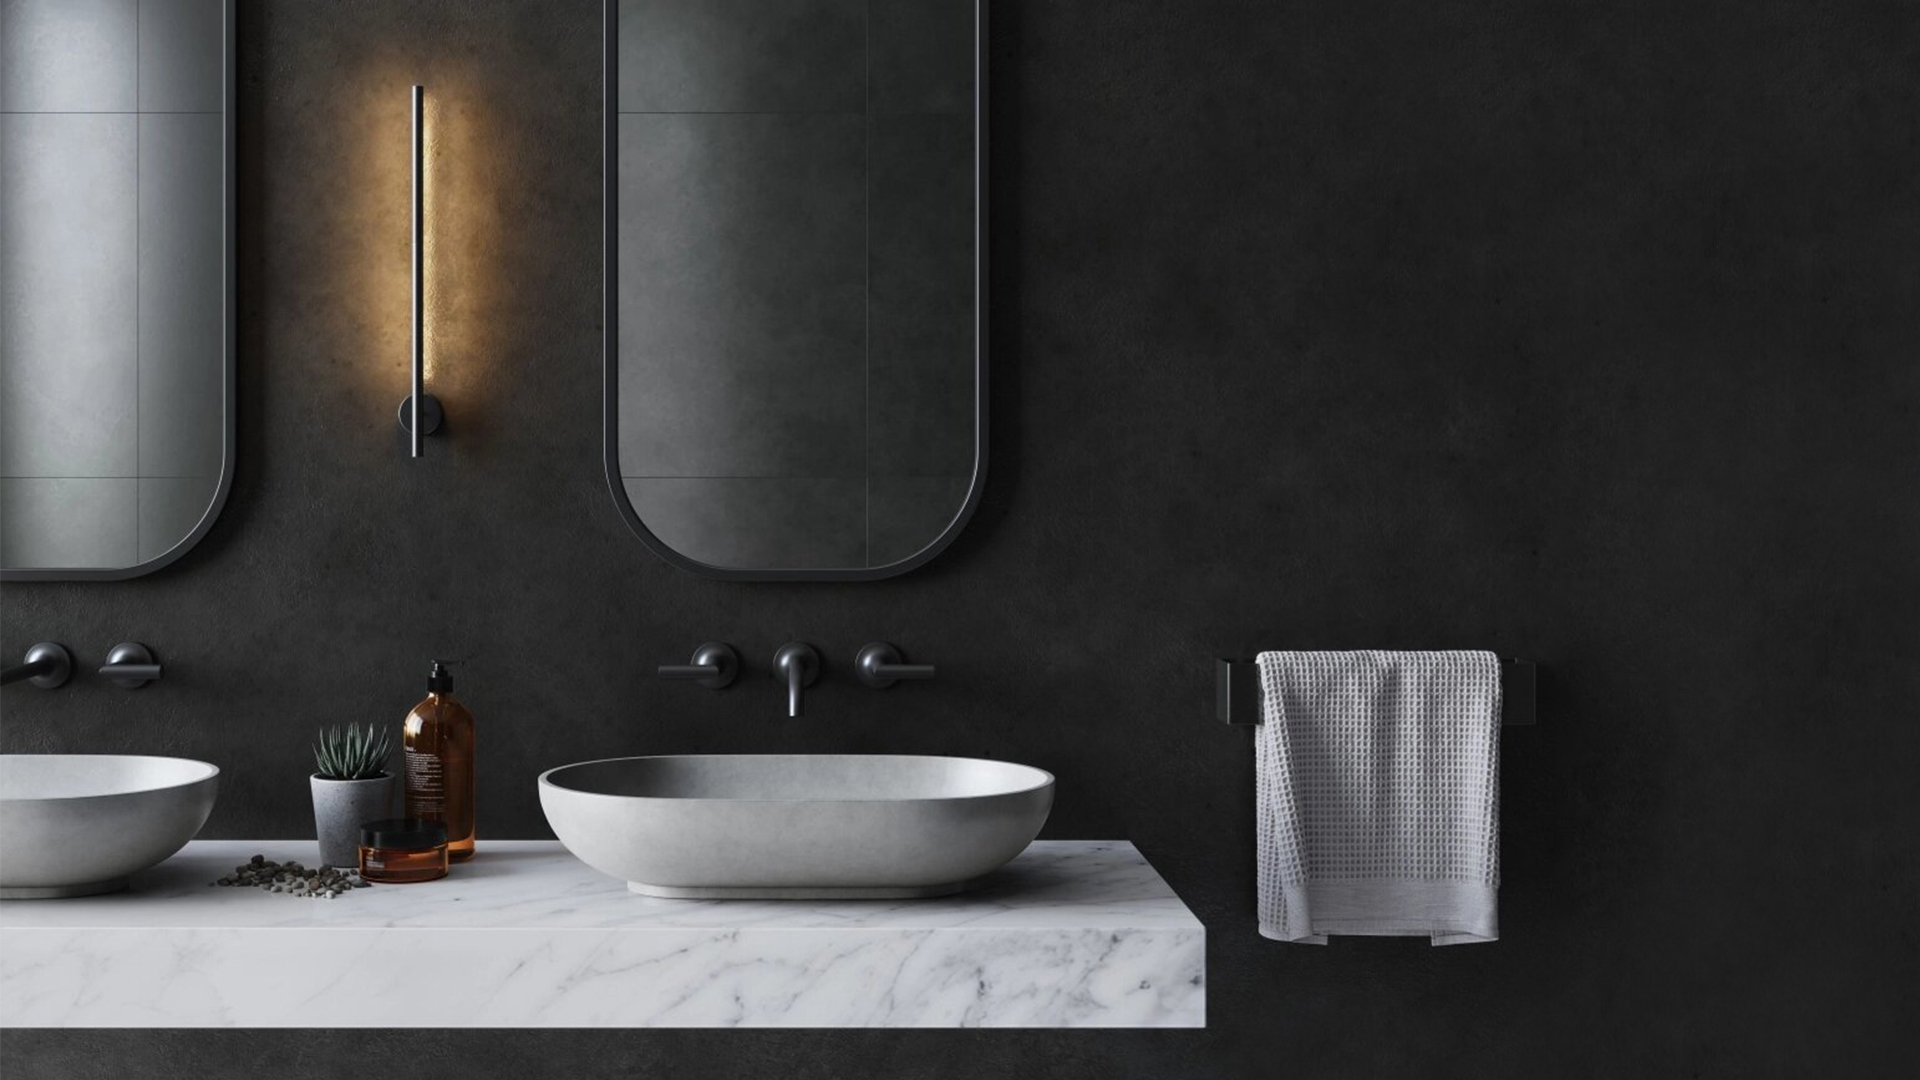 CGI Project for a Bathroom Rendering